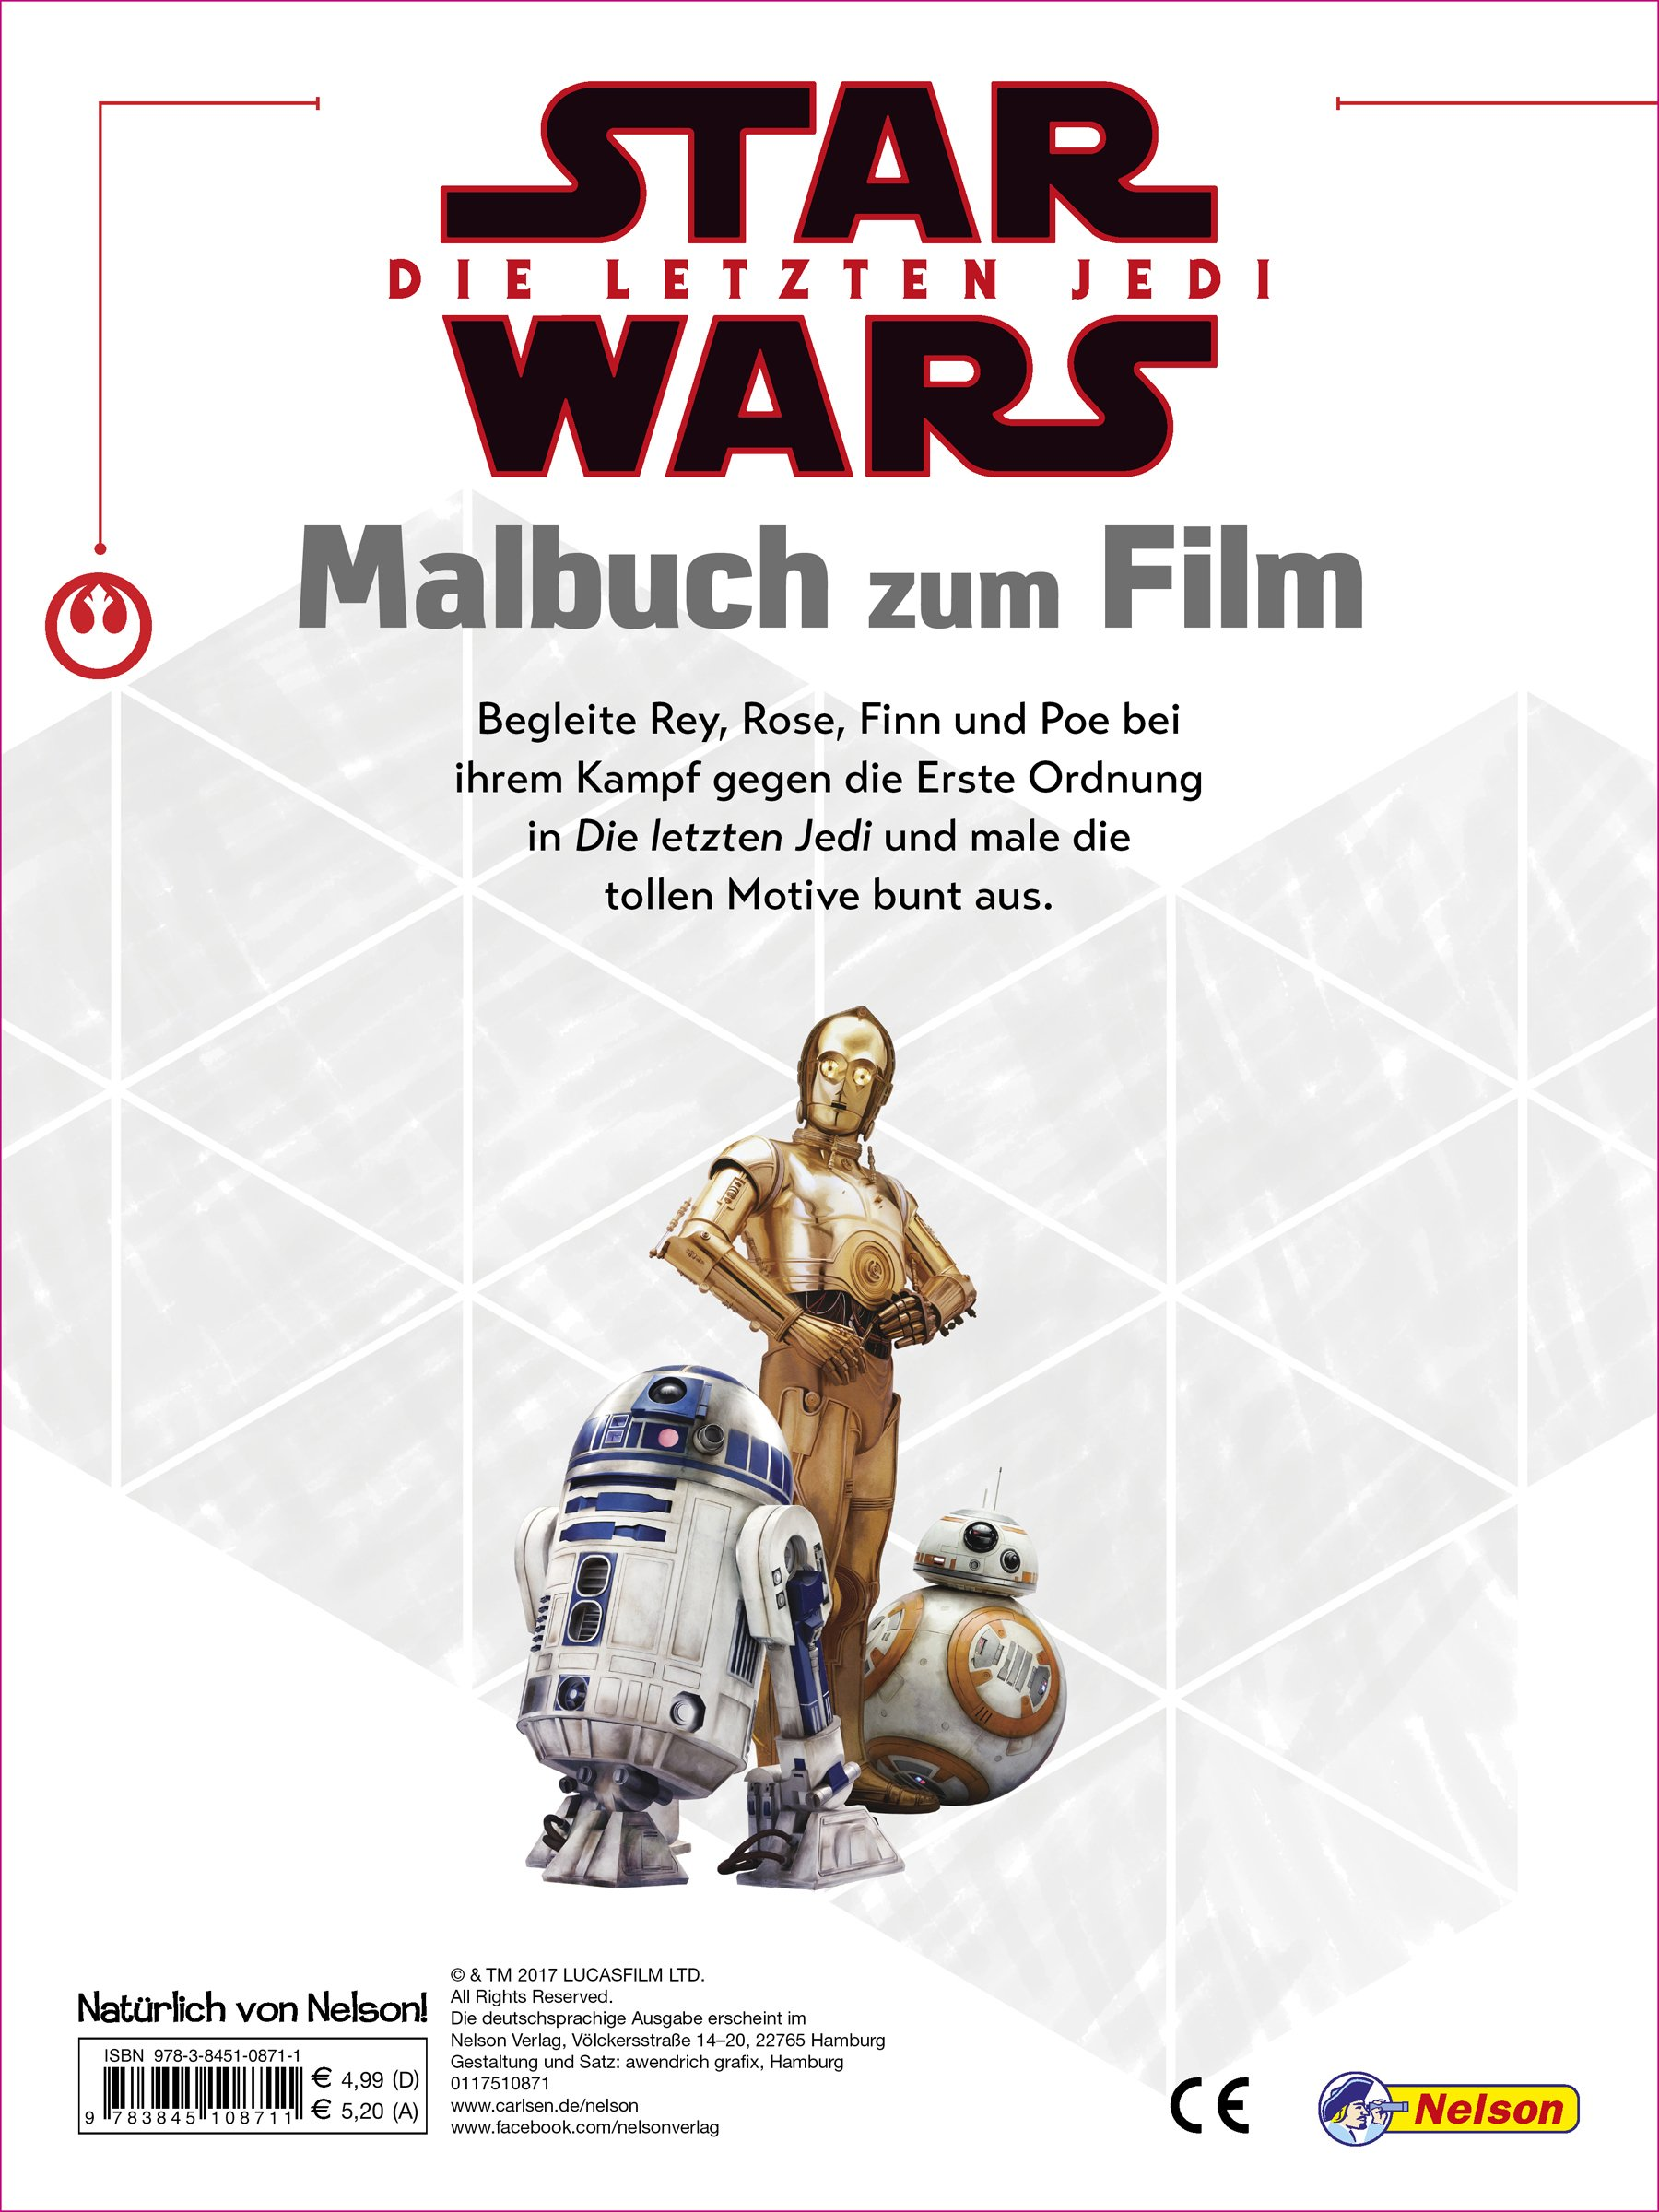 Star Wars Episode Viii Malbuch Download Image collections - Ebooks ...